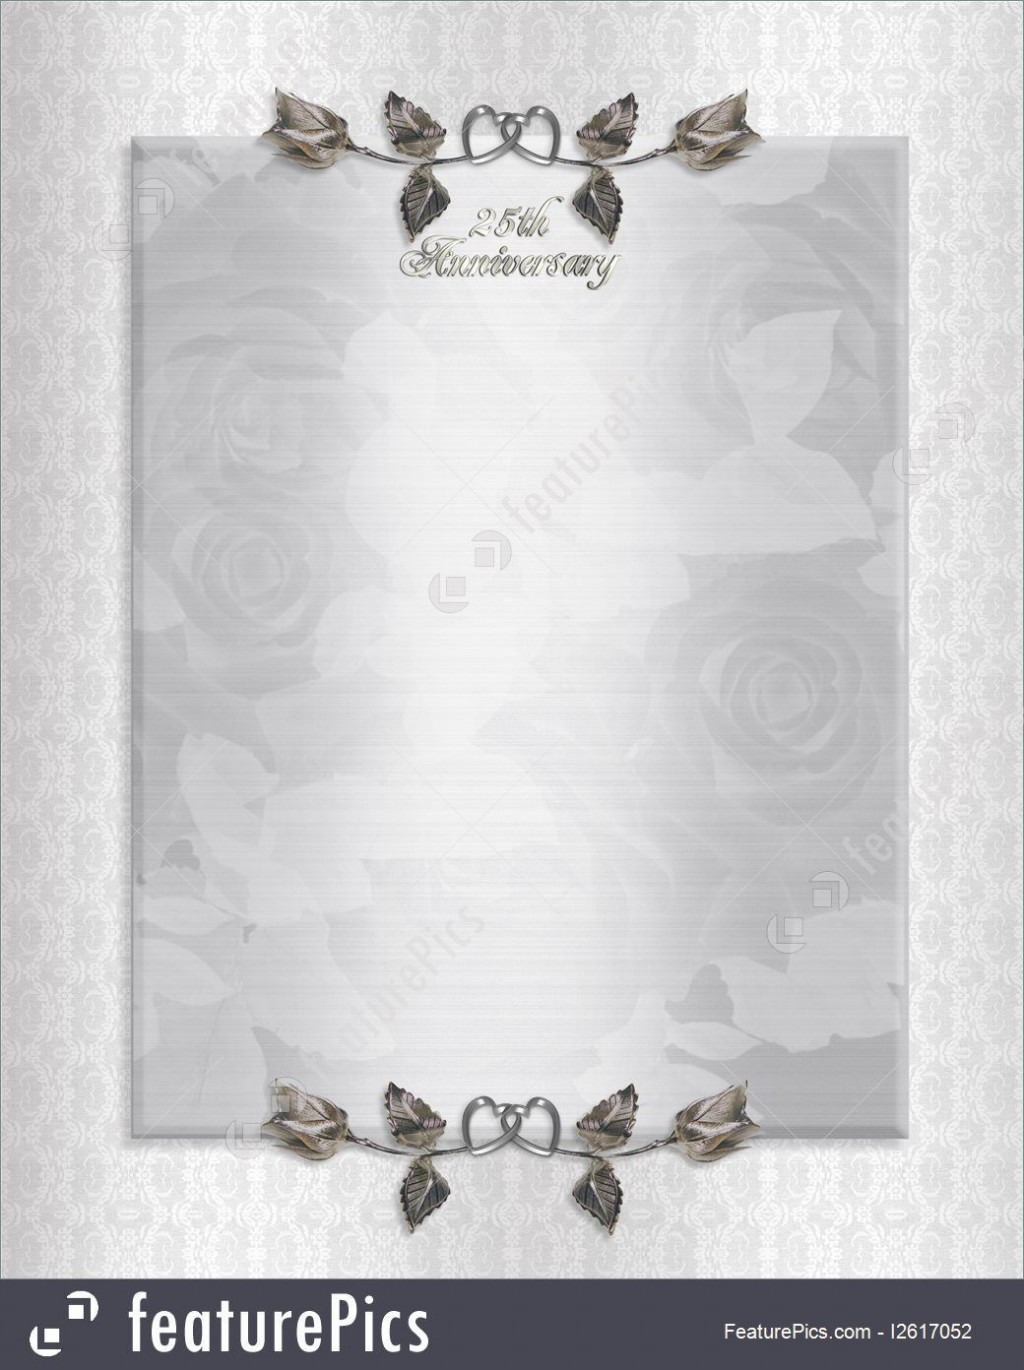 001 Frightening 50th Anniversary Invitation Card Template Inspiration  Templates FreeLarge